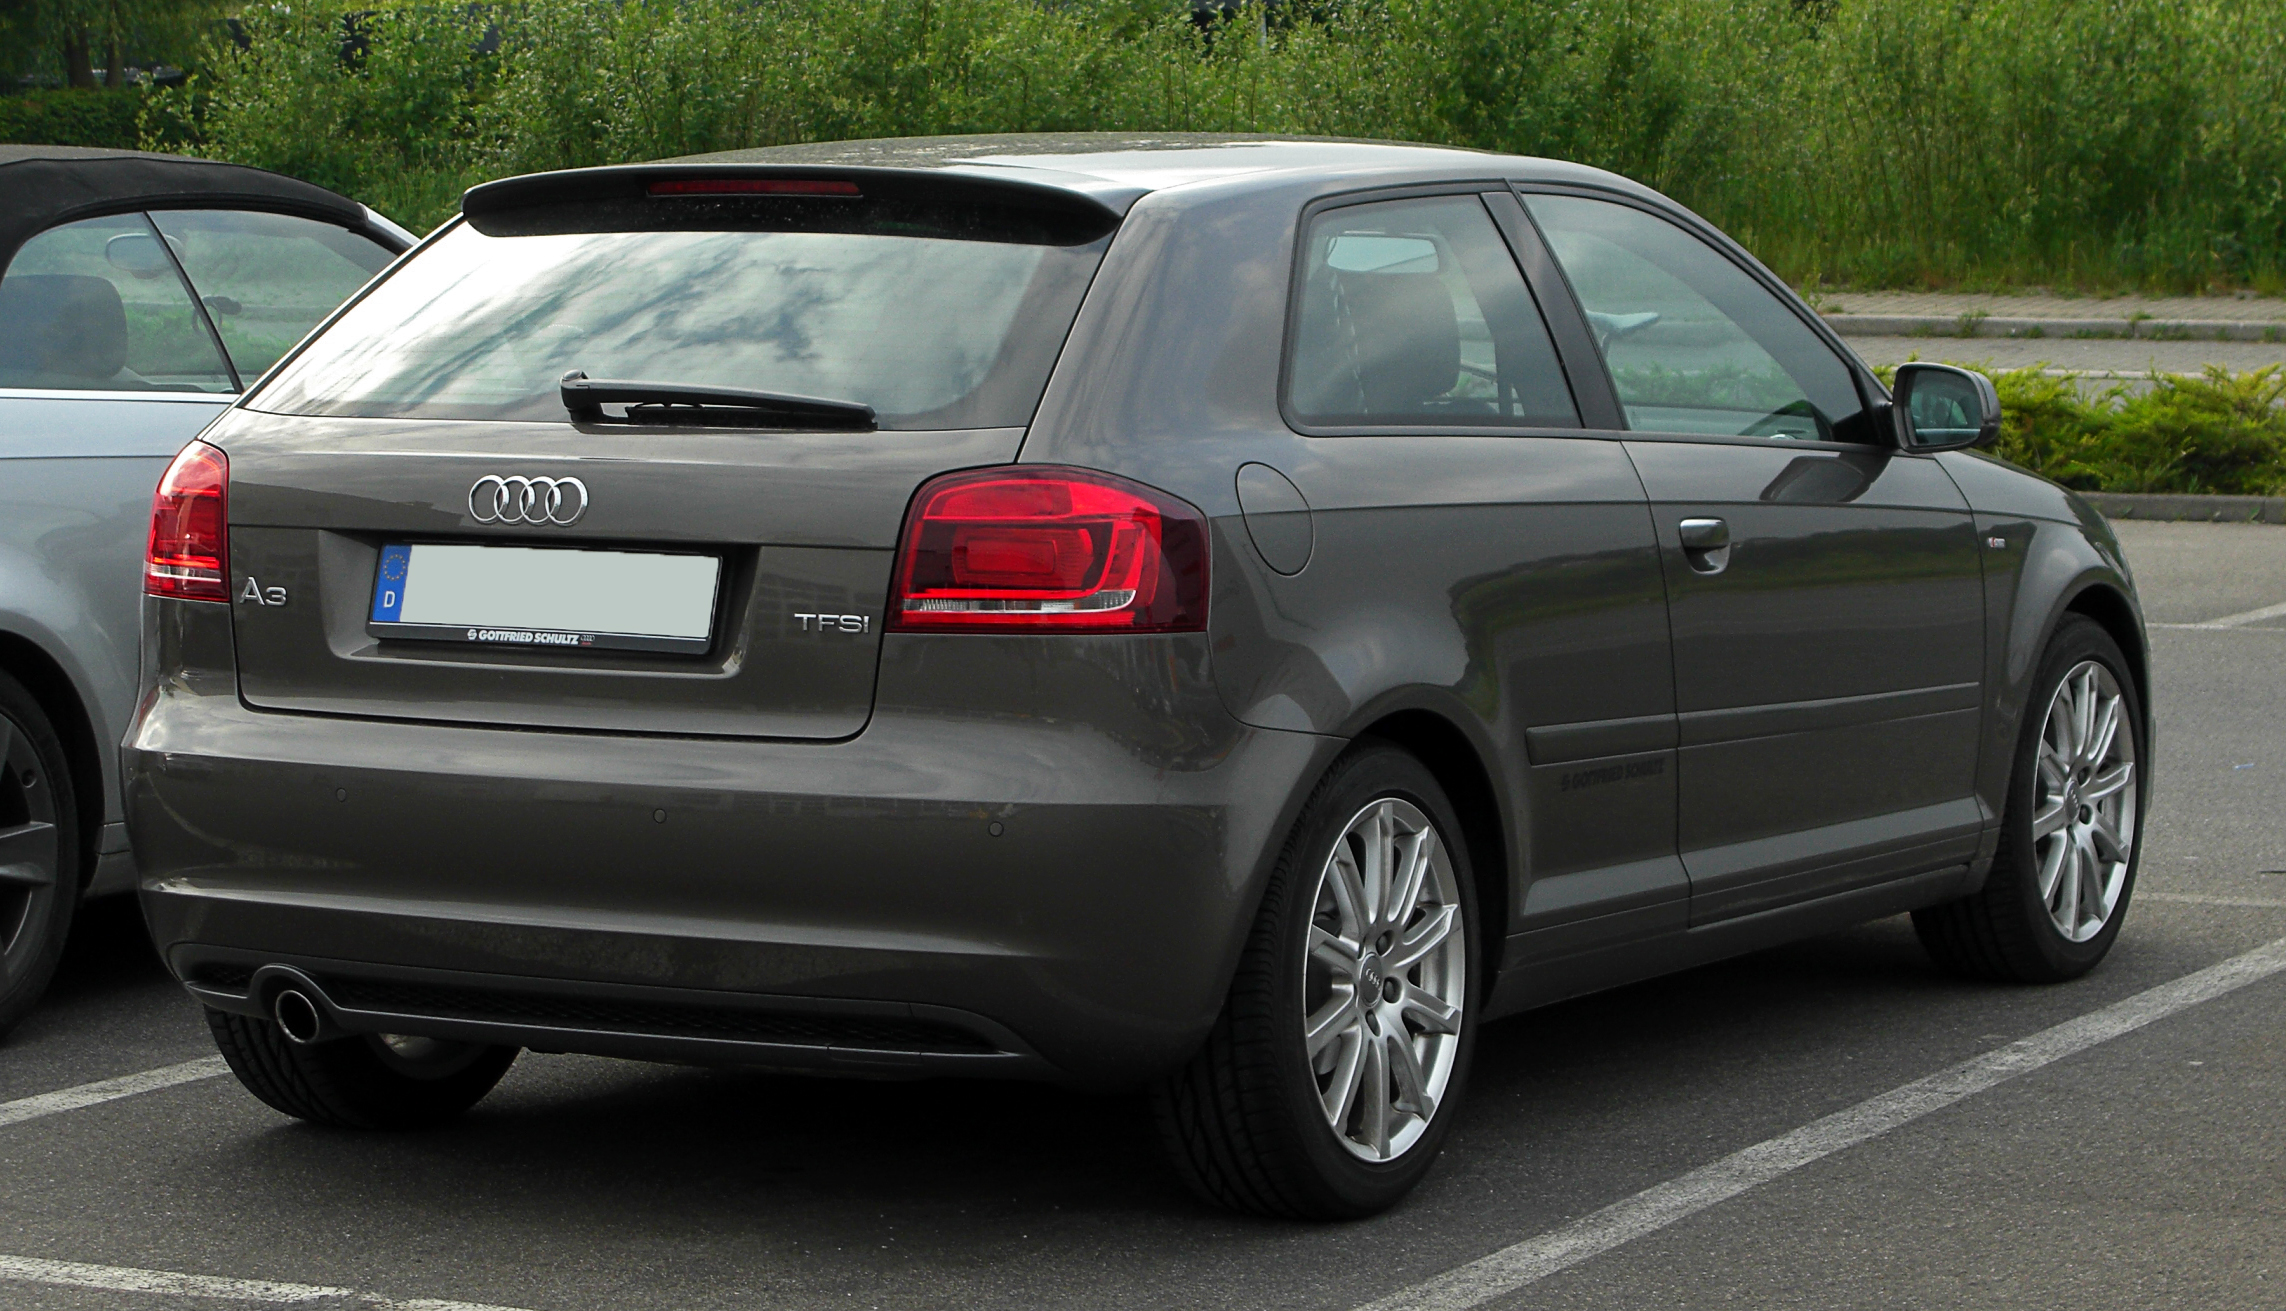 2011 audi a3 8p pictures information and specs auto. Black Bedroom Furniture Sets. Home Design Ideas